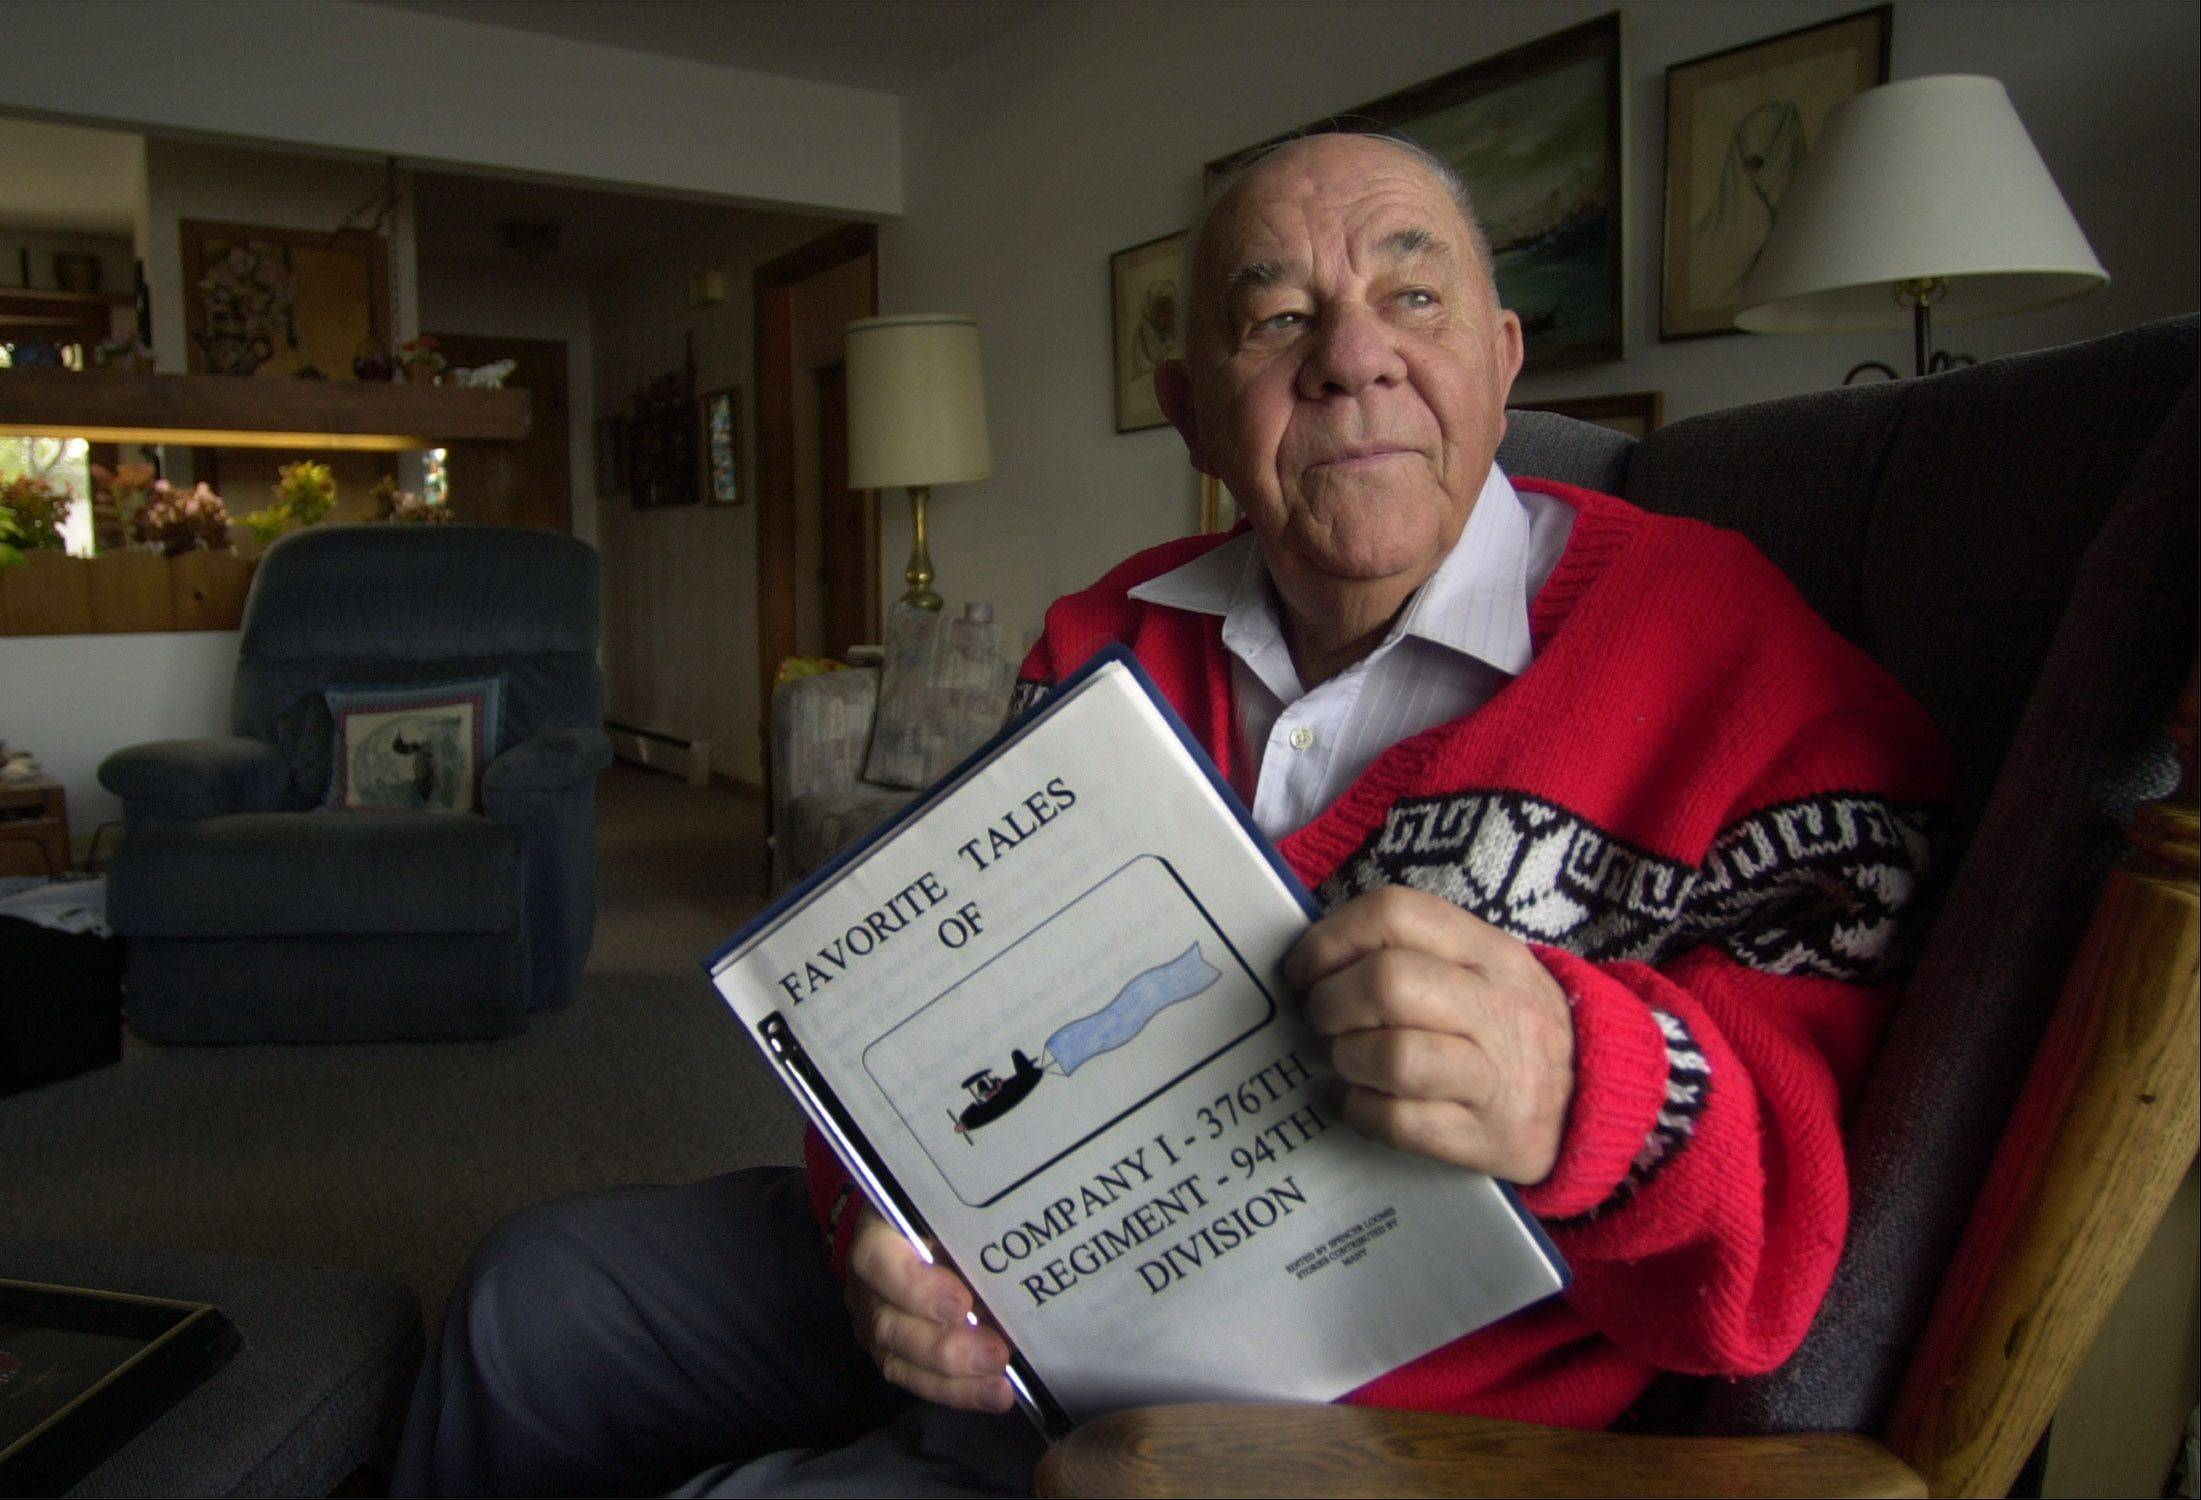 Spencer Loomis of Lake Zurich with his self-published book about his experiences in World War II.